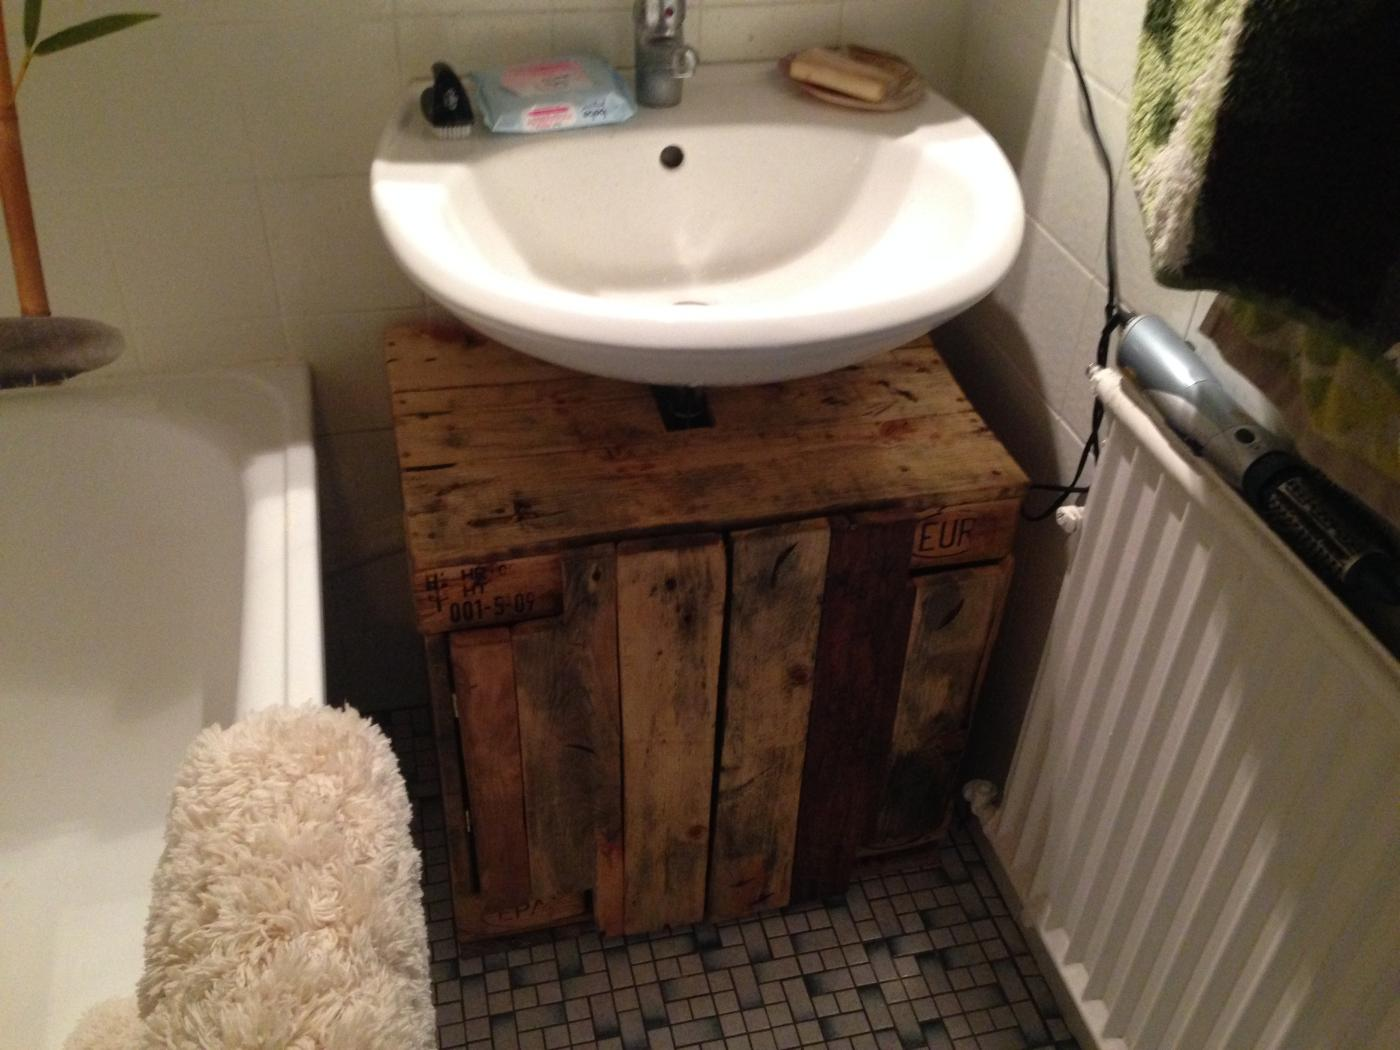 Badschrank Waschbecken Bathroom Cabinet: Cupboard Below Sink From Pallet Timber